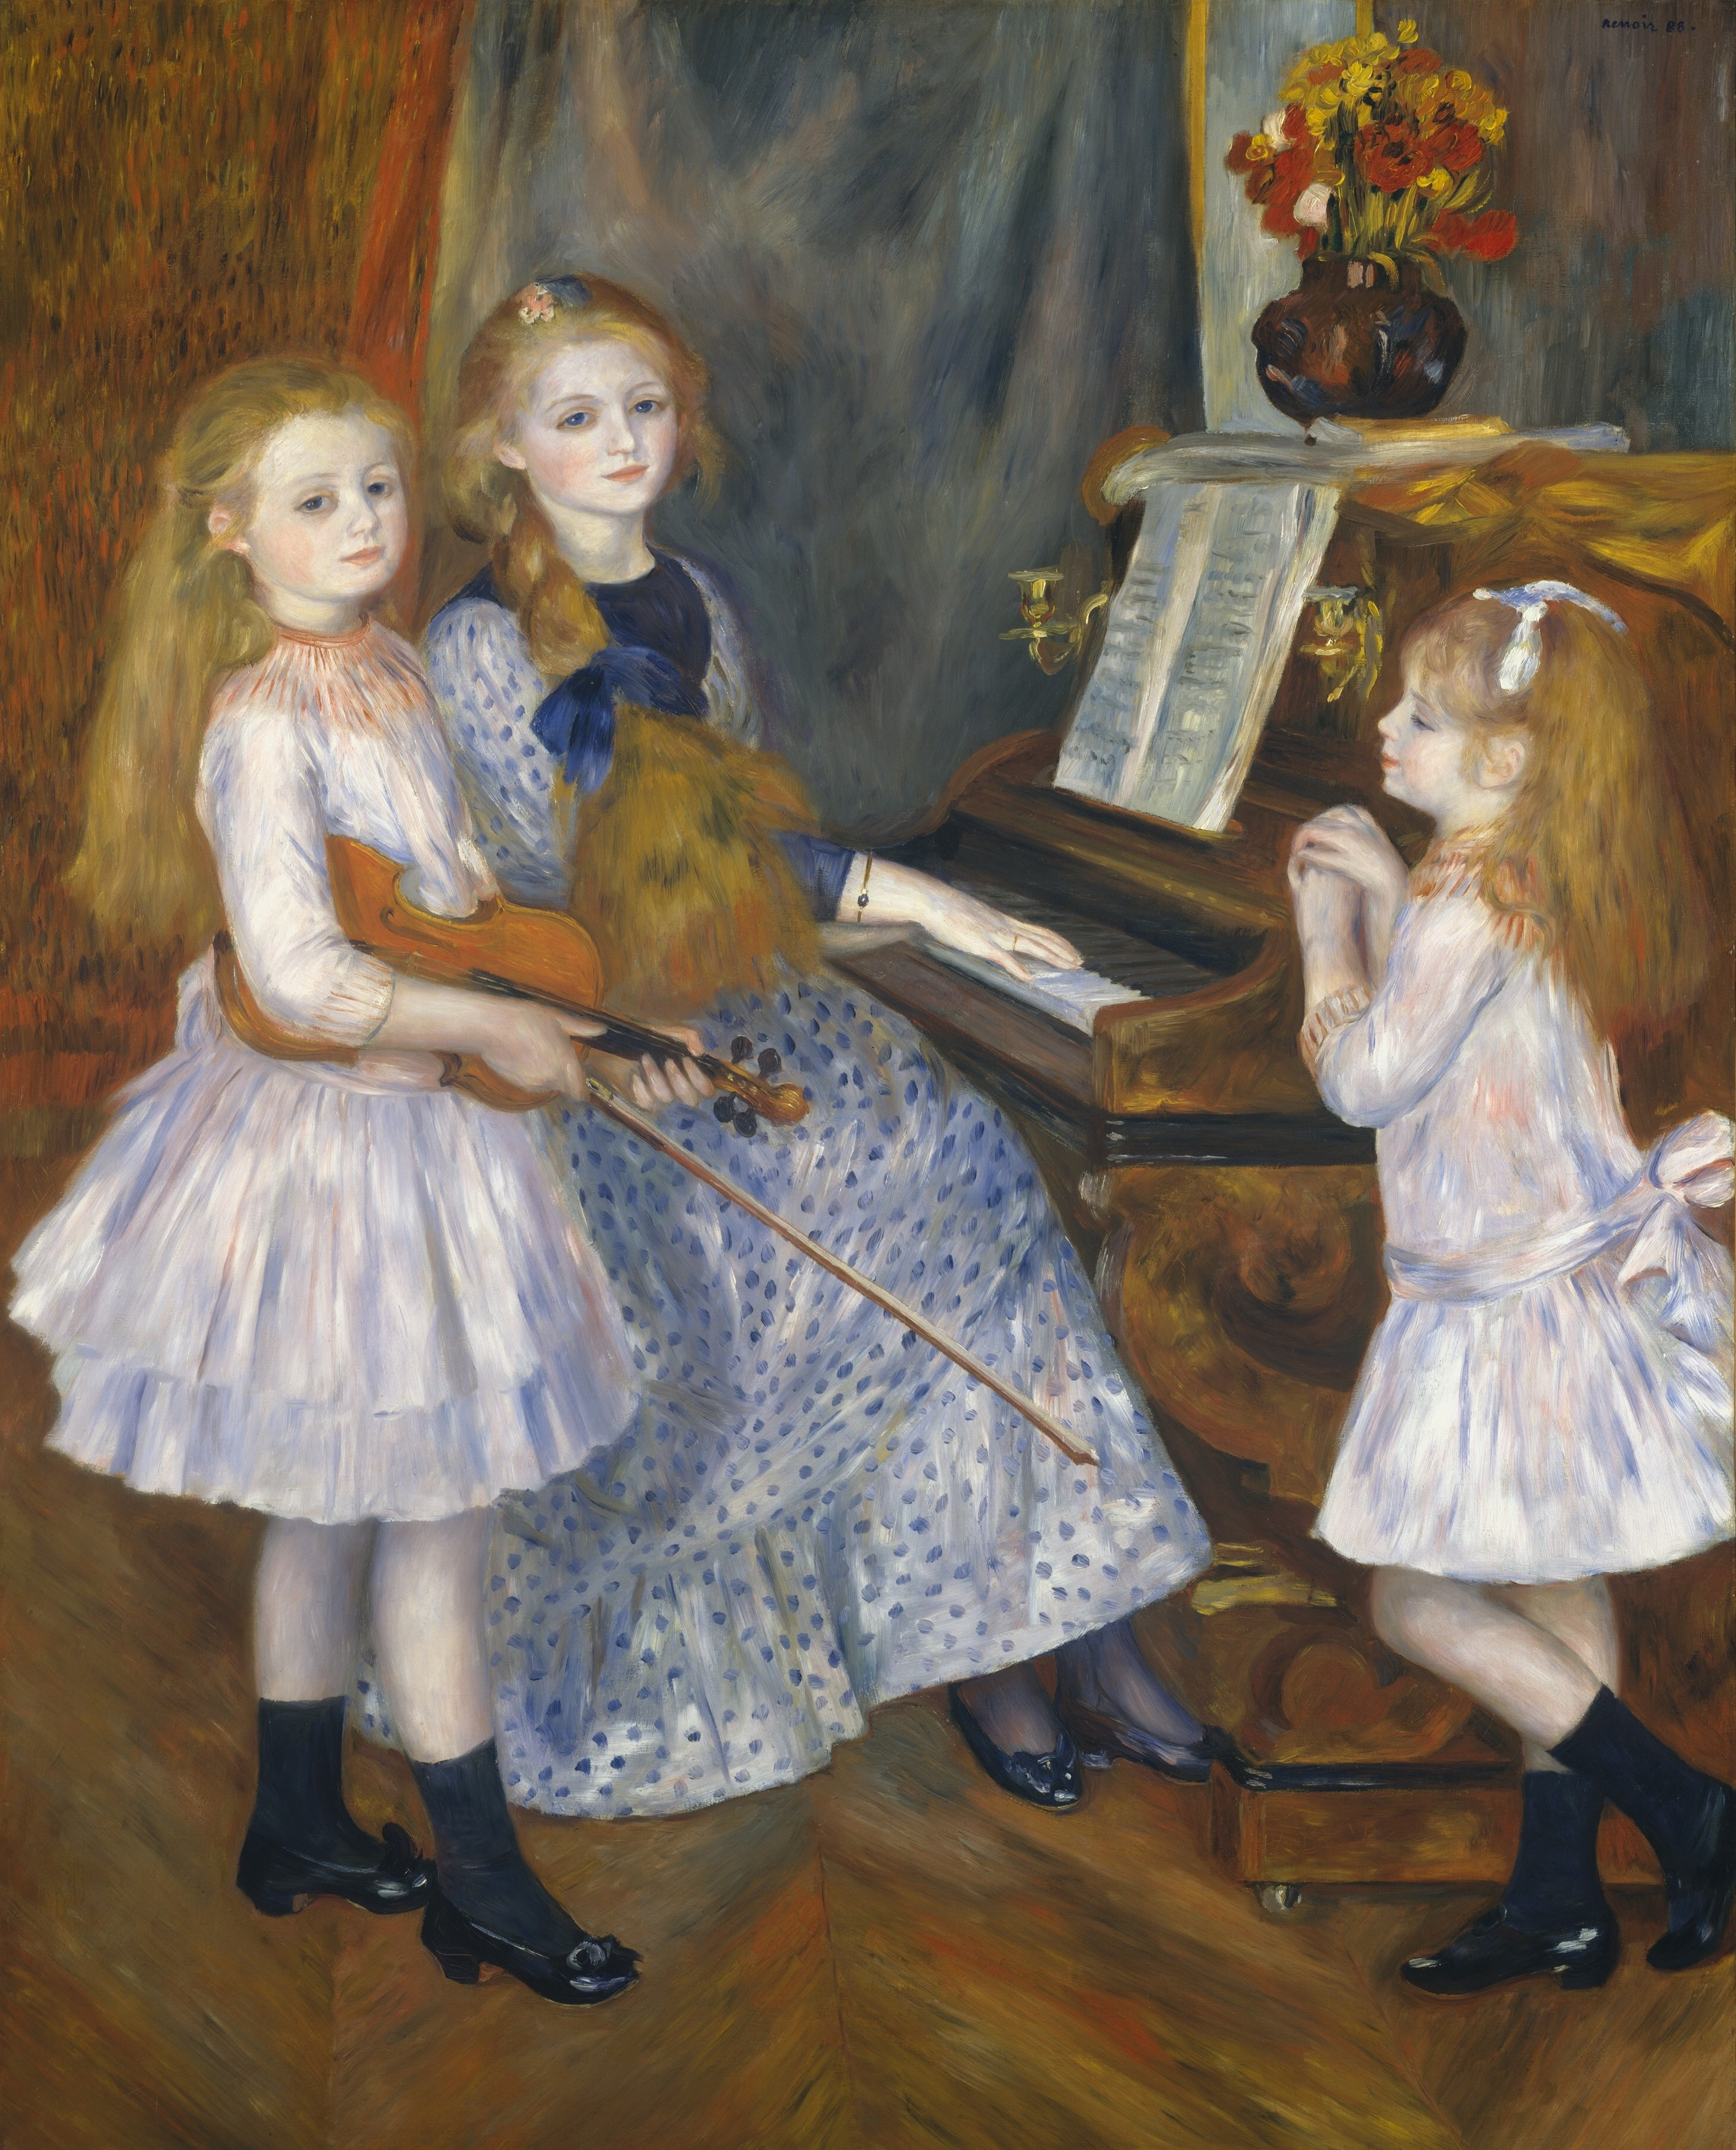 The Daughters of Catulle Mendès by Pierre Auguste Renoir, 1888